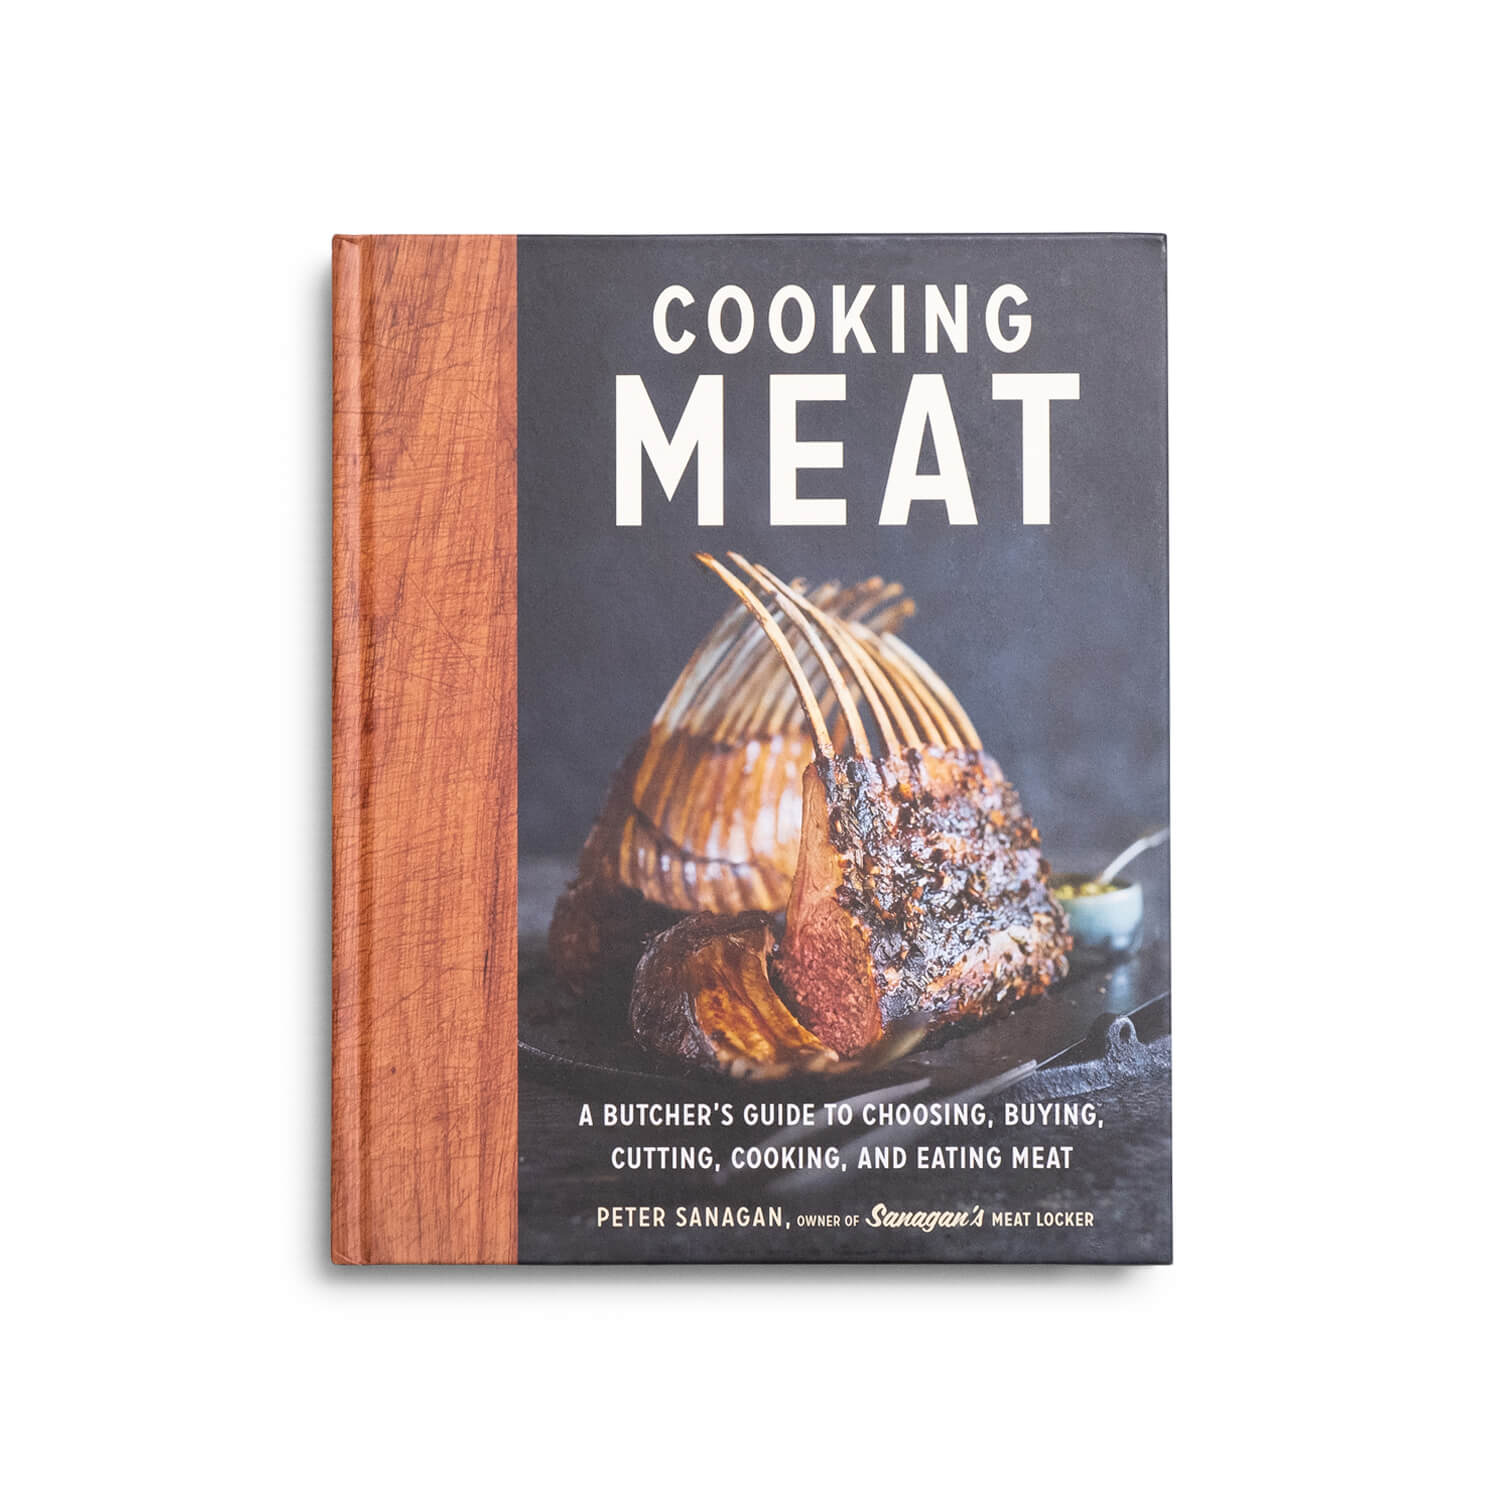 Cooking Meat: A Butcher's Guide to Choosing, Buying, Cutting, Cooking, and Eating Meat